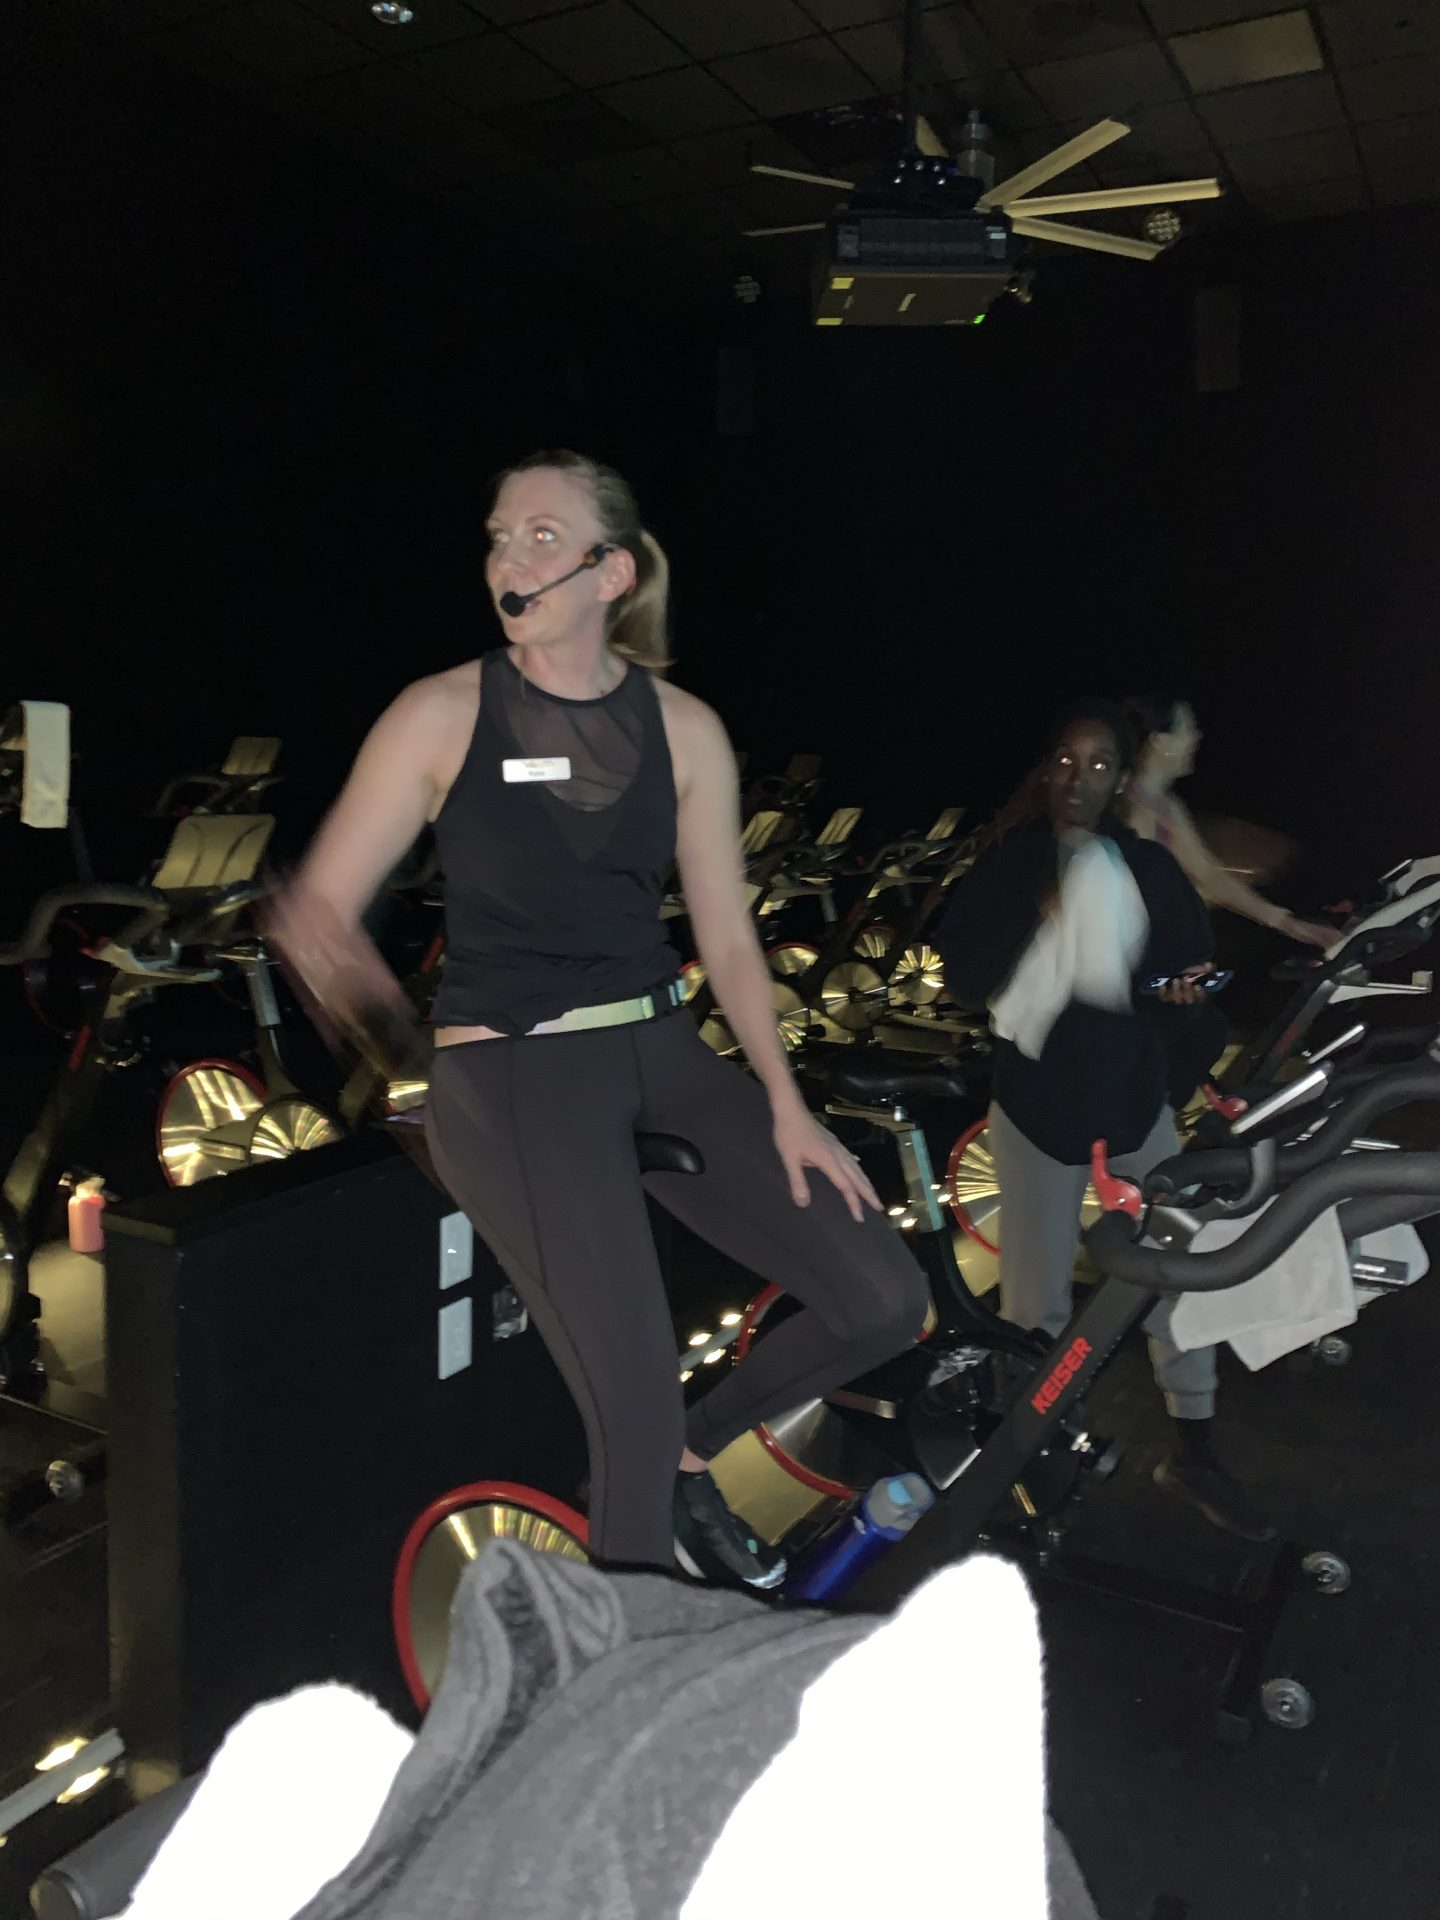 Les Mills The Trip cycling class by villasport - houston gyms